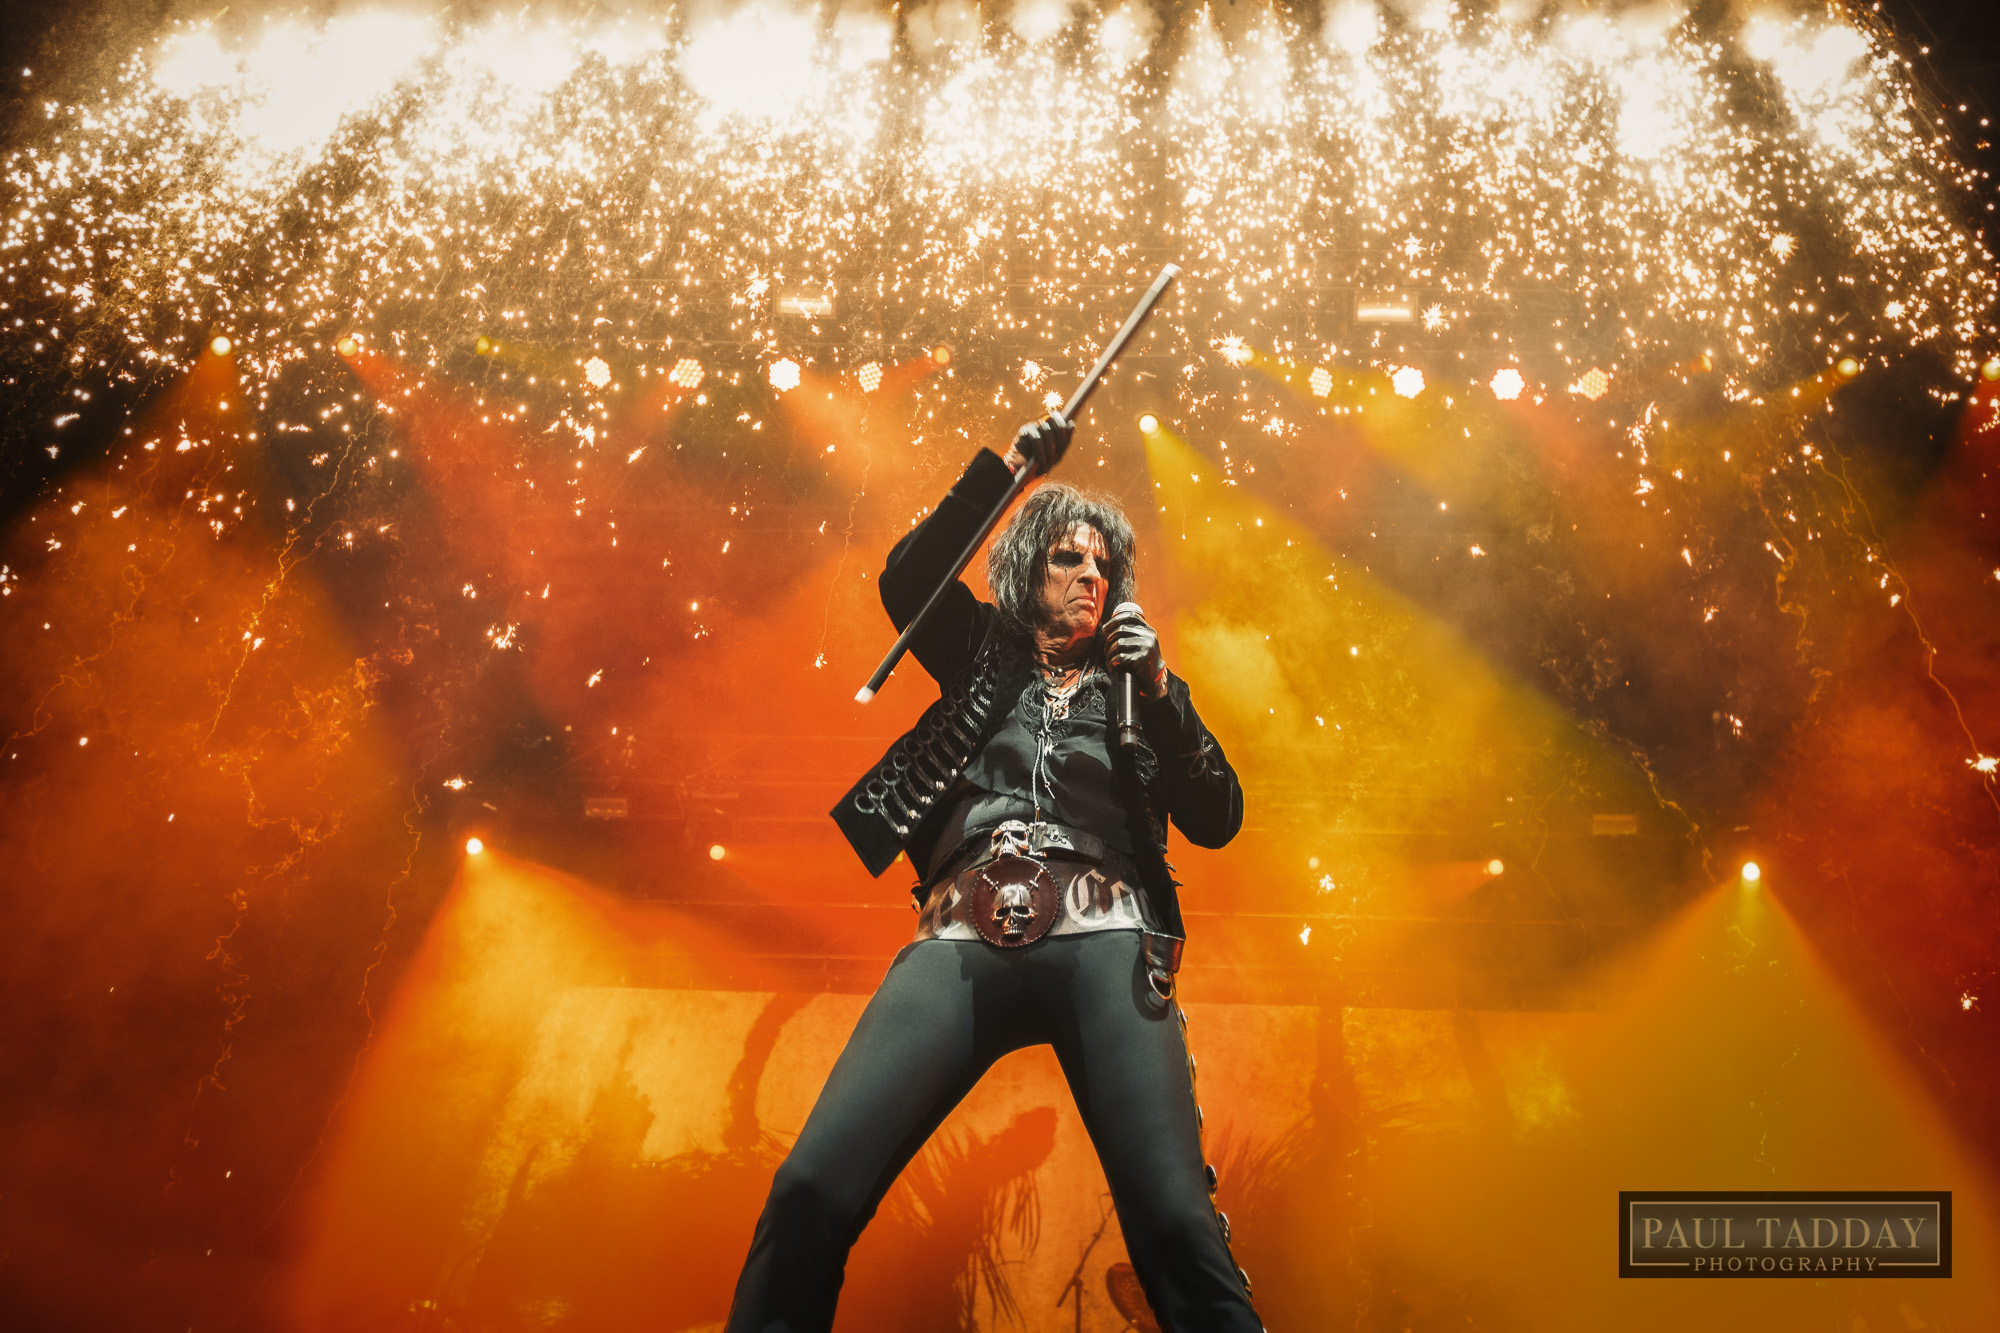 alice cooper - melbourne - paul tadday photography - 201017 - 3.jpg